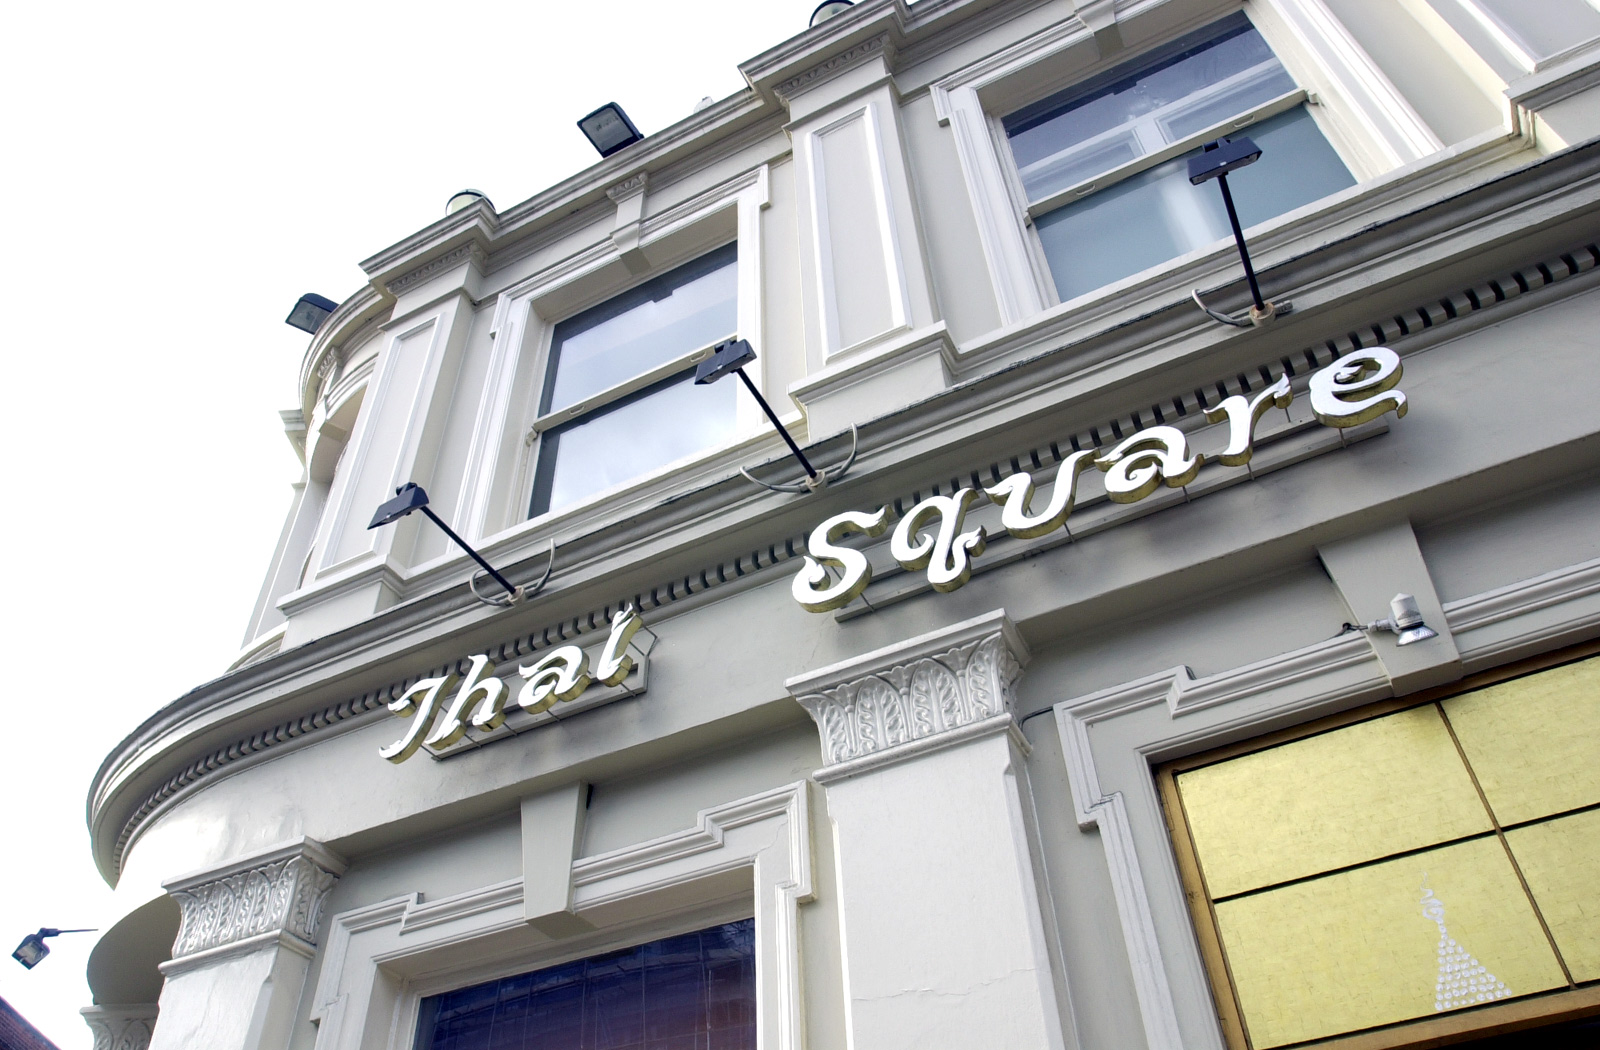 Thai Square South Kensington - London